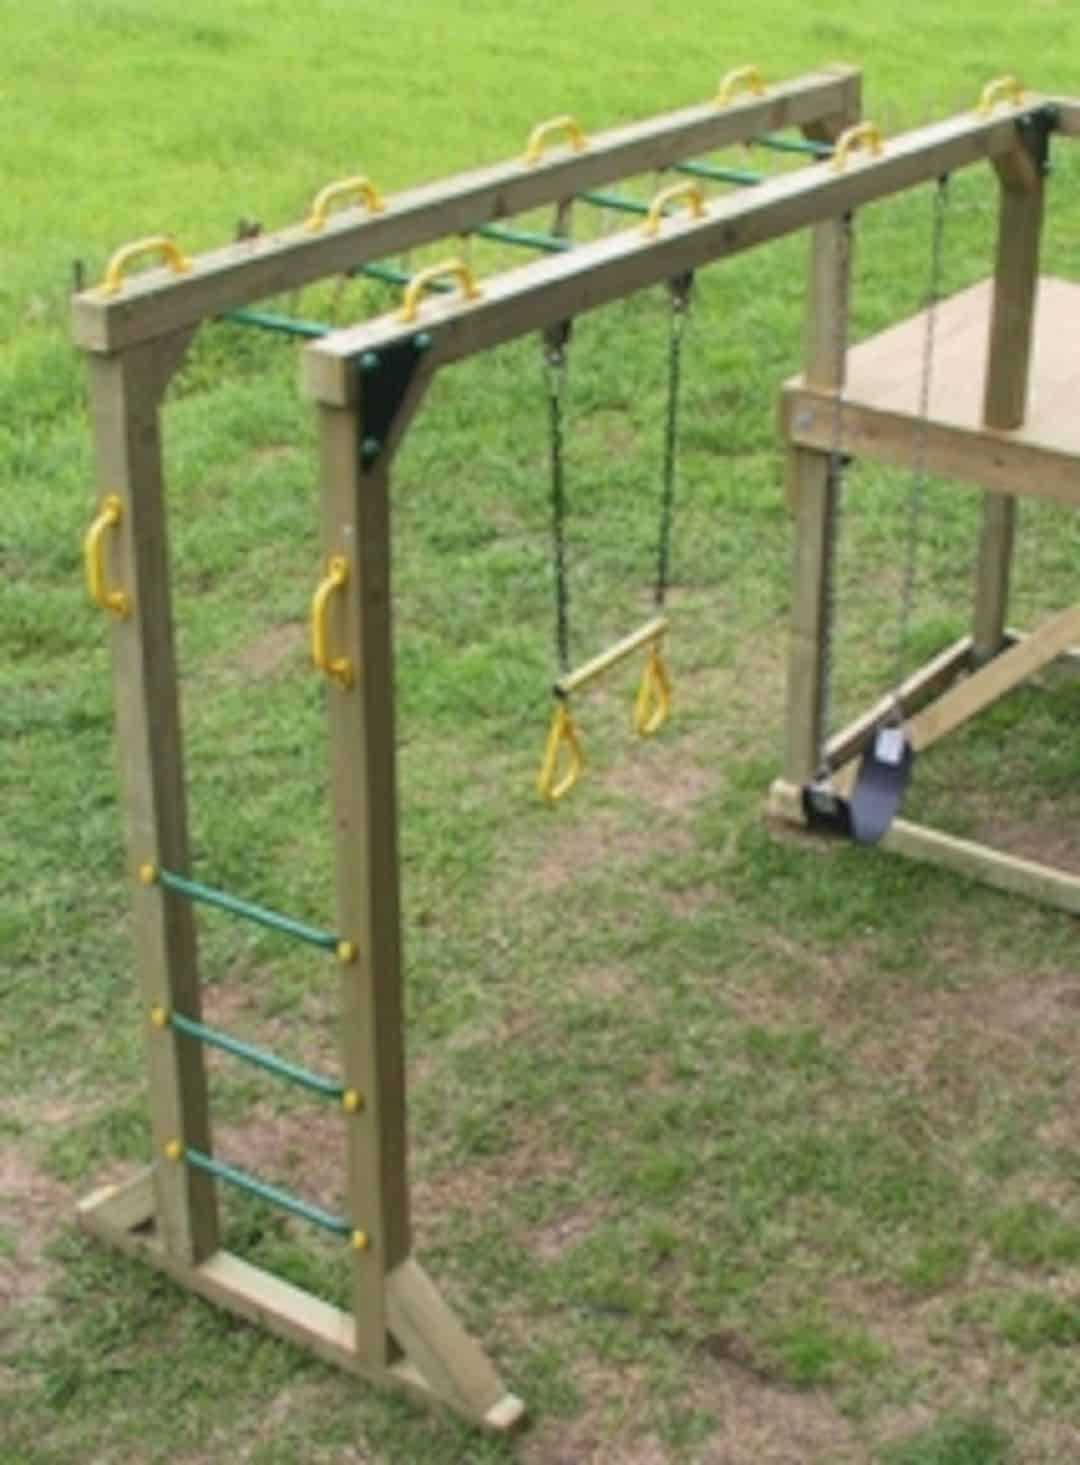 6 Diy Welding Project Ideas For Home Improvements Or Fun Diy Kids Playground Diy Playground Backyard Playground Backyard diy monkey bars